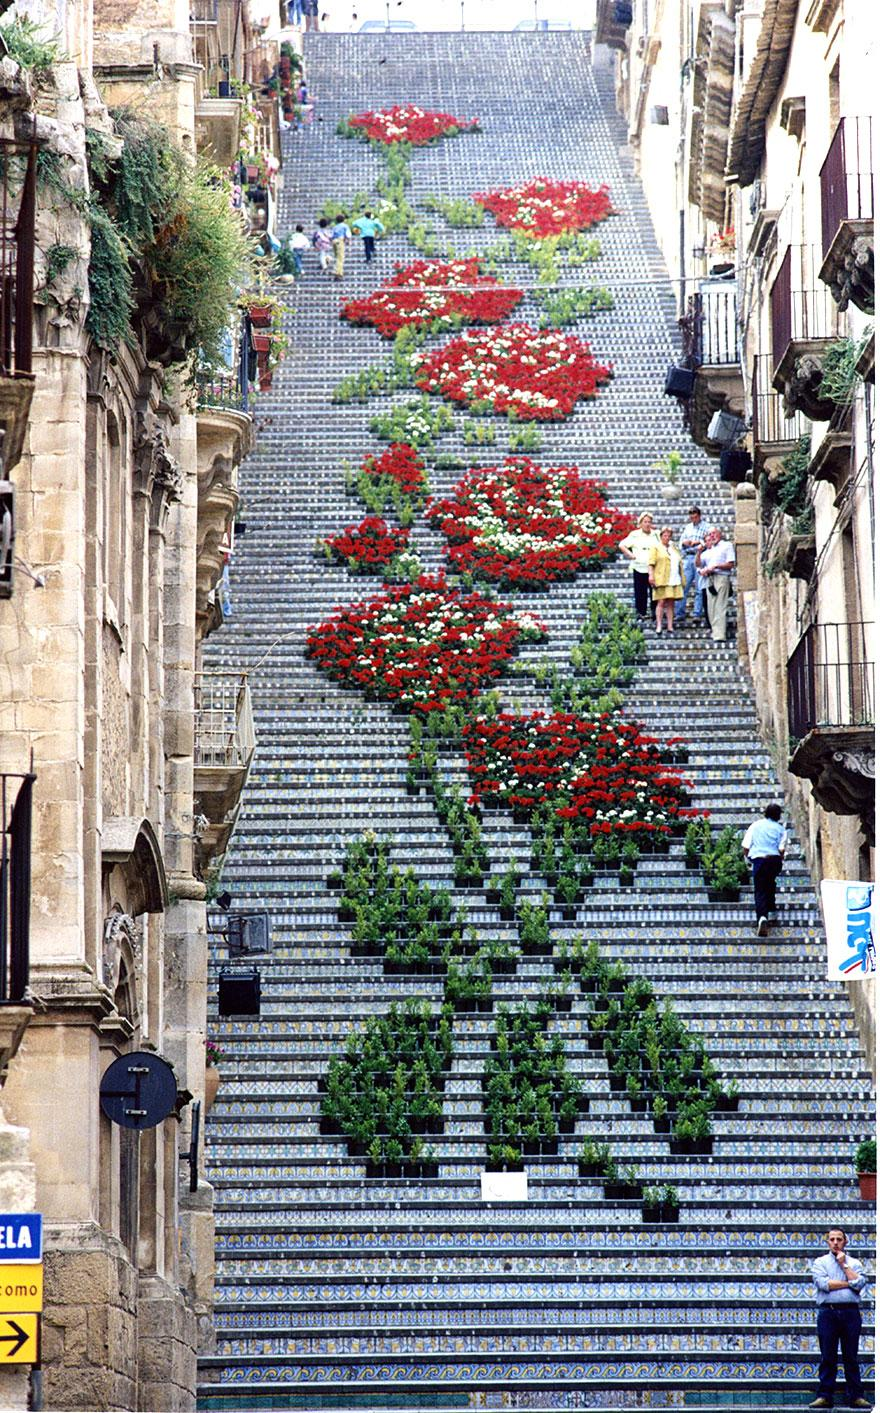 creative-stairs-street-art-6-1